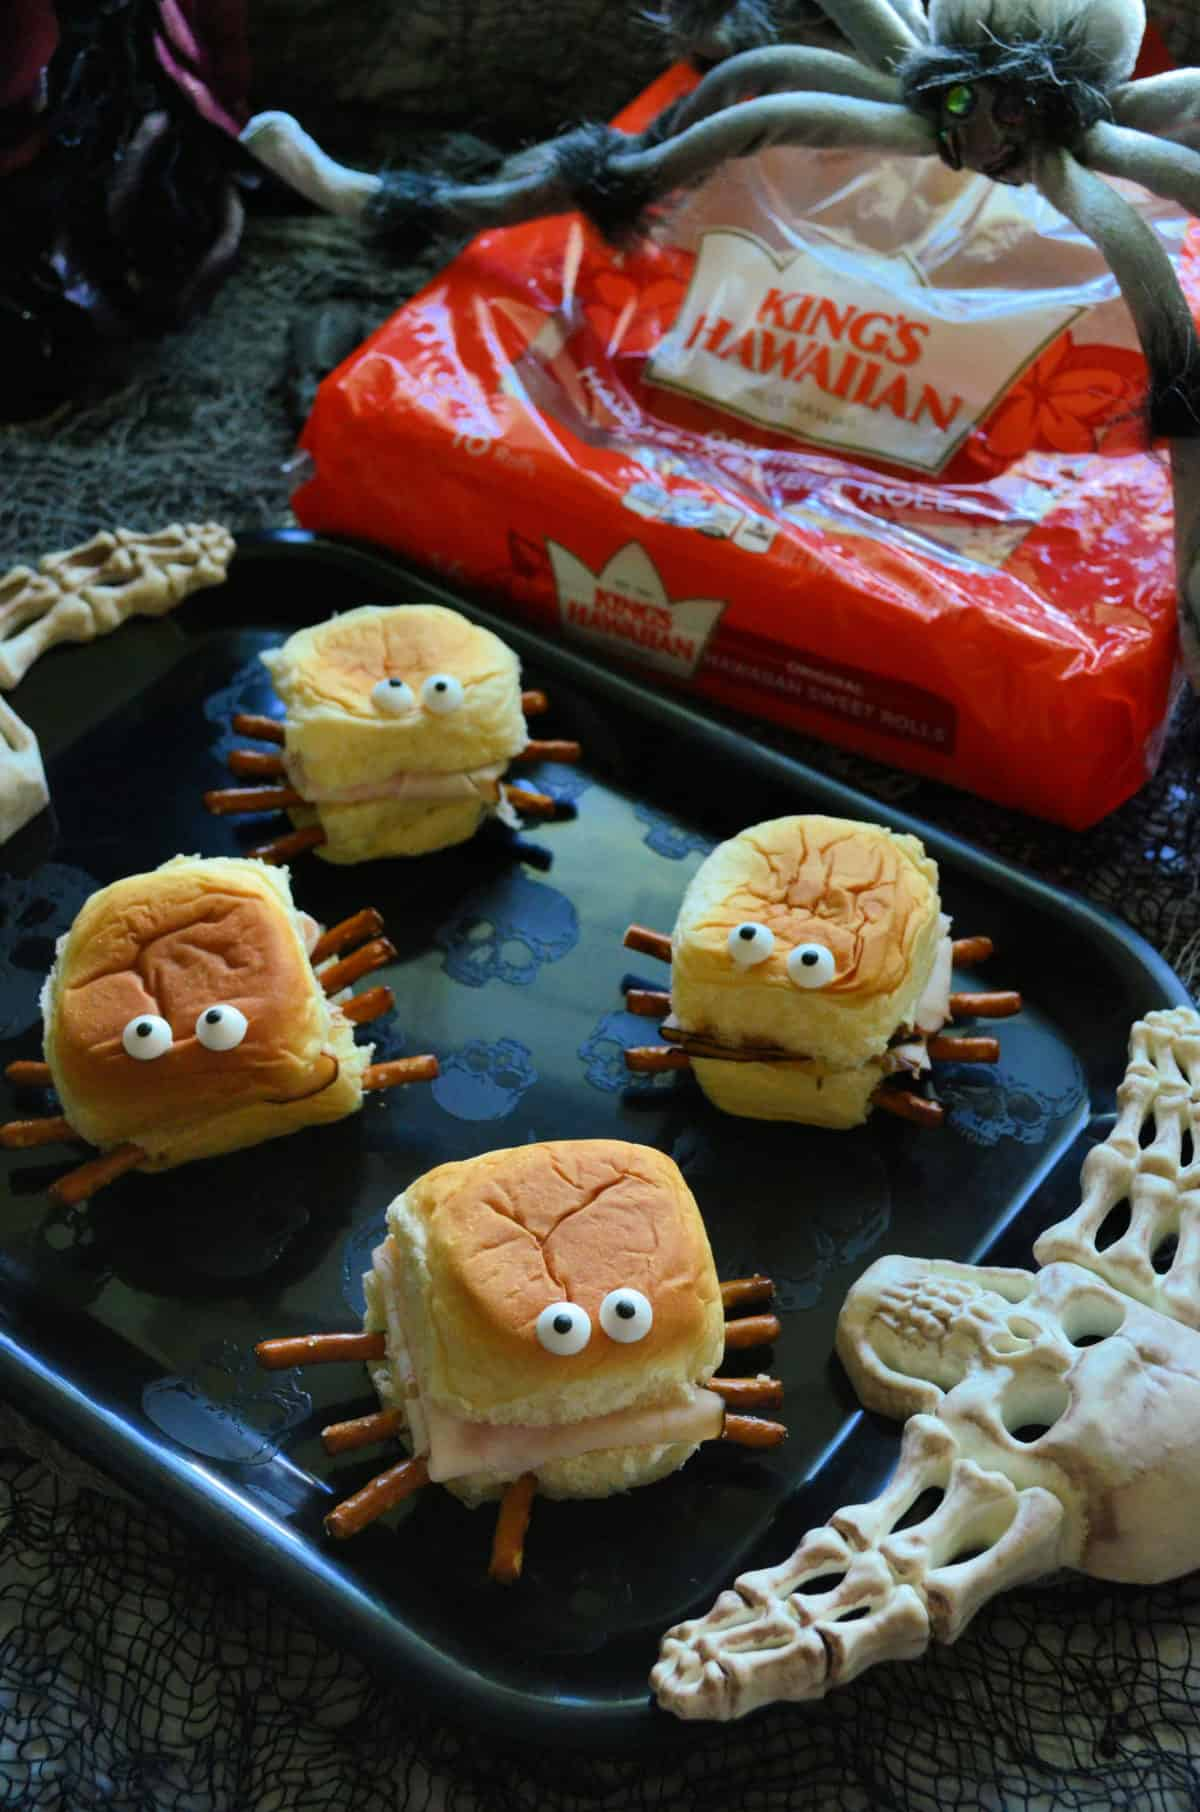 King's Hawaiian rolls with turkey, pretzels sticking out like spider legs, and candy eyes on top.